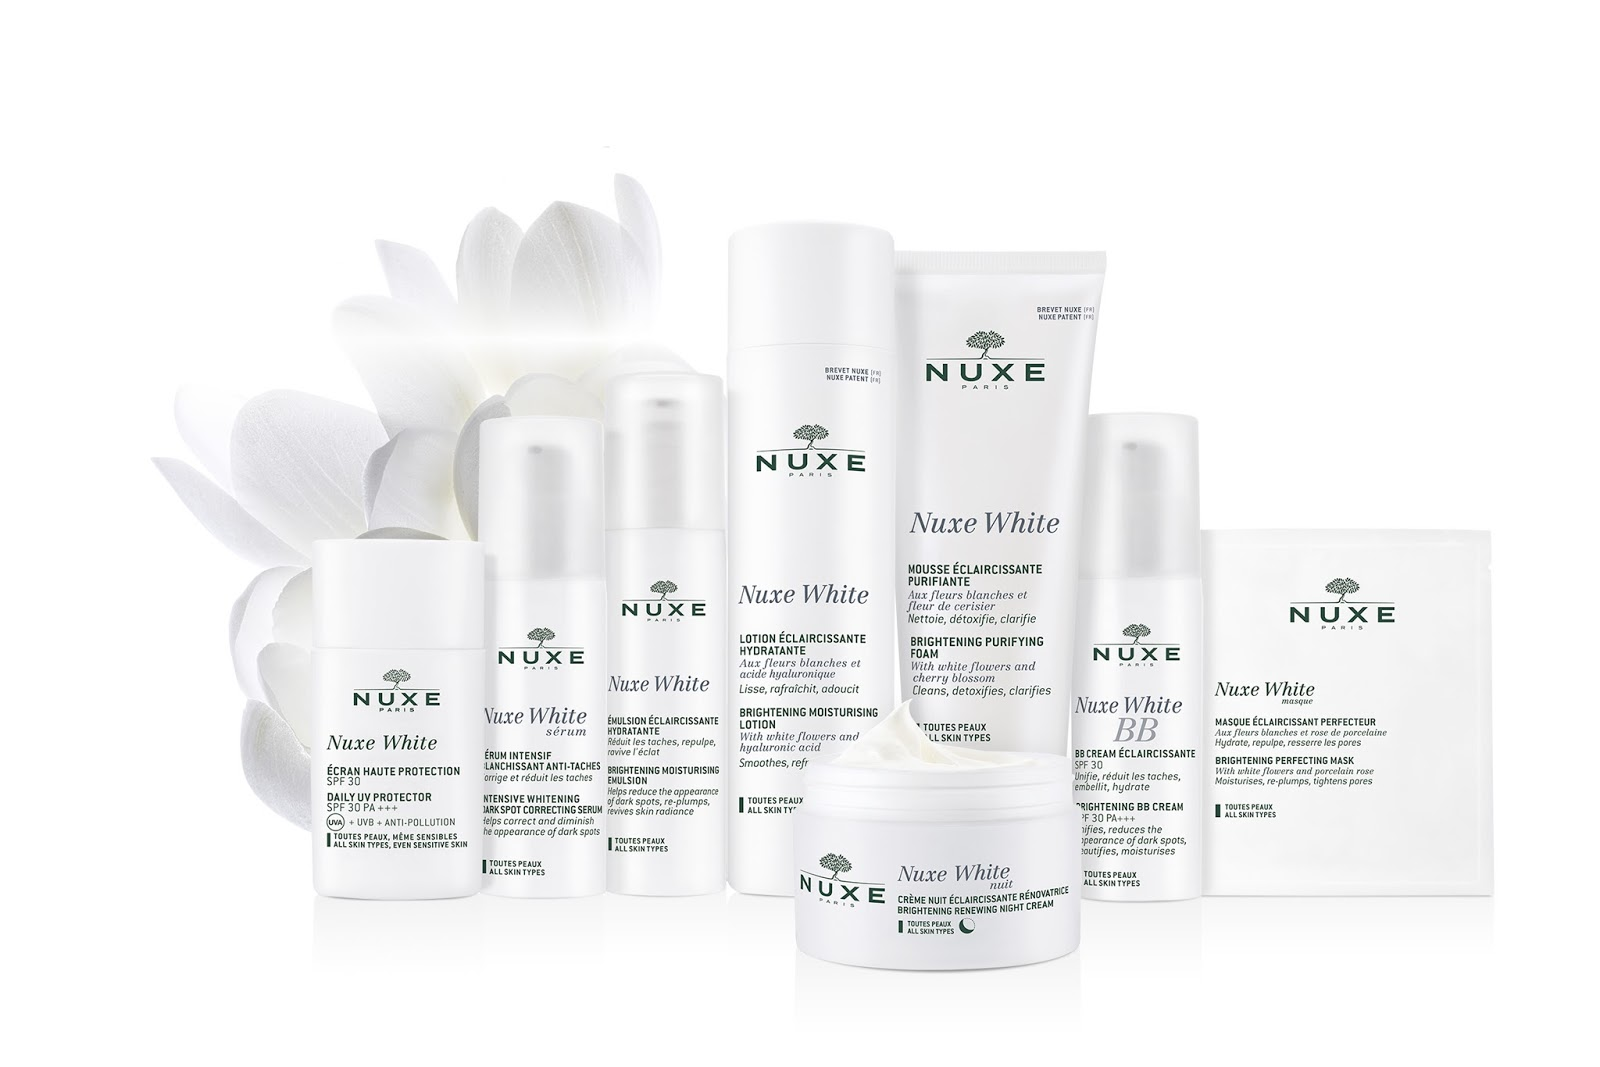 The Swanple Event Nuxe White Bloggers Tea Party Oilum Brightening Care Body Butter Range Of Products